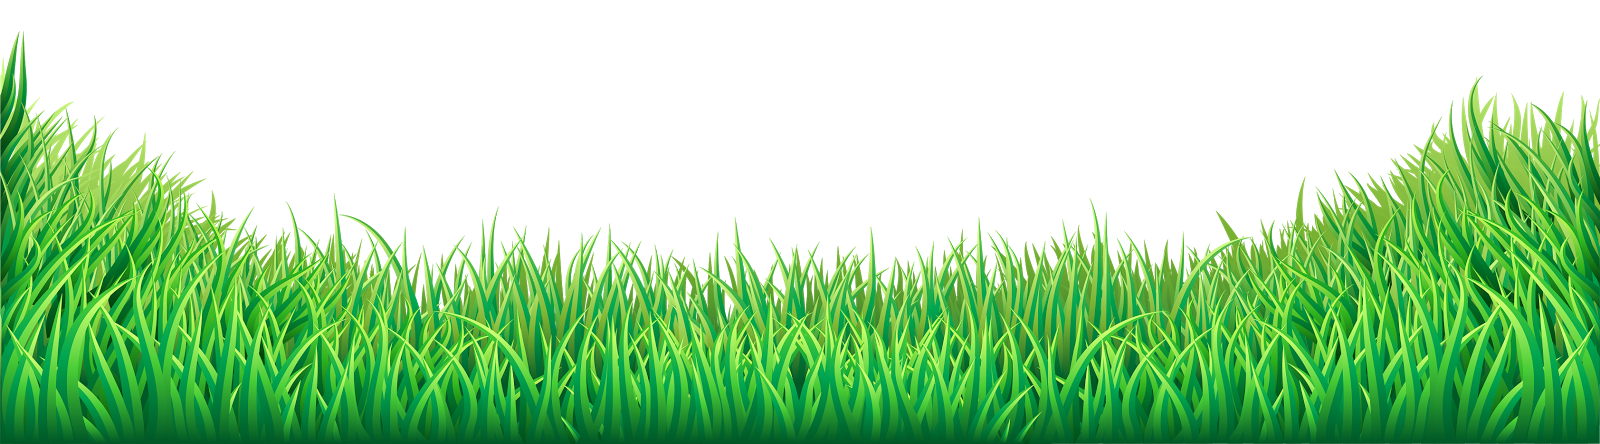 Png Grass Images For Photoshop - Grass HD PNG